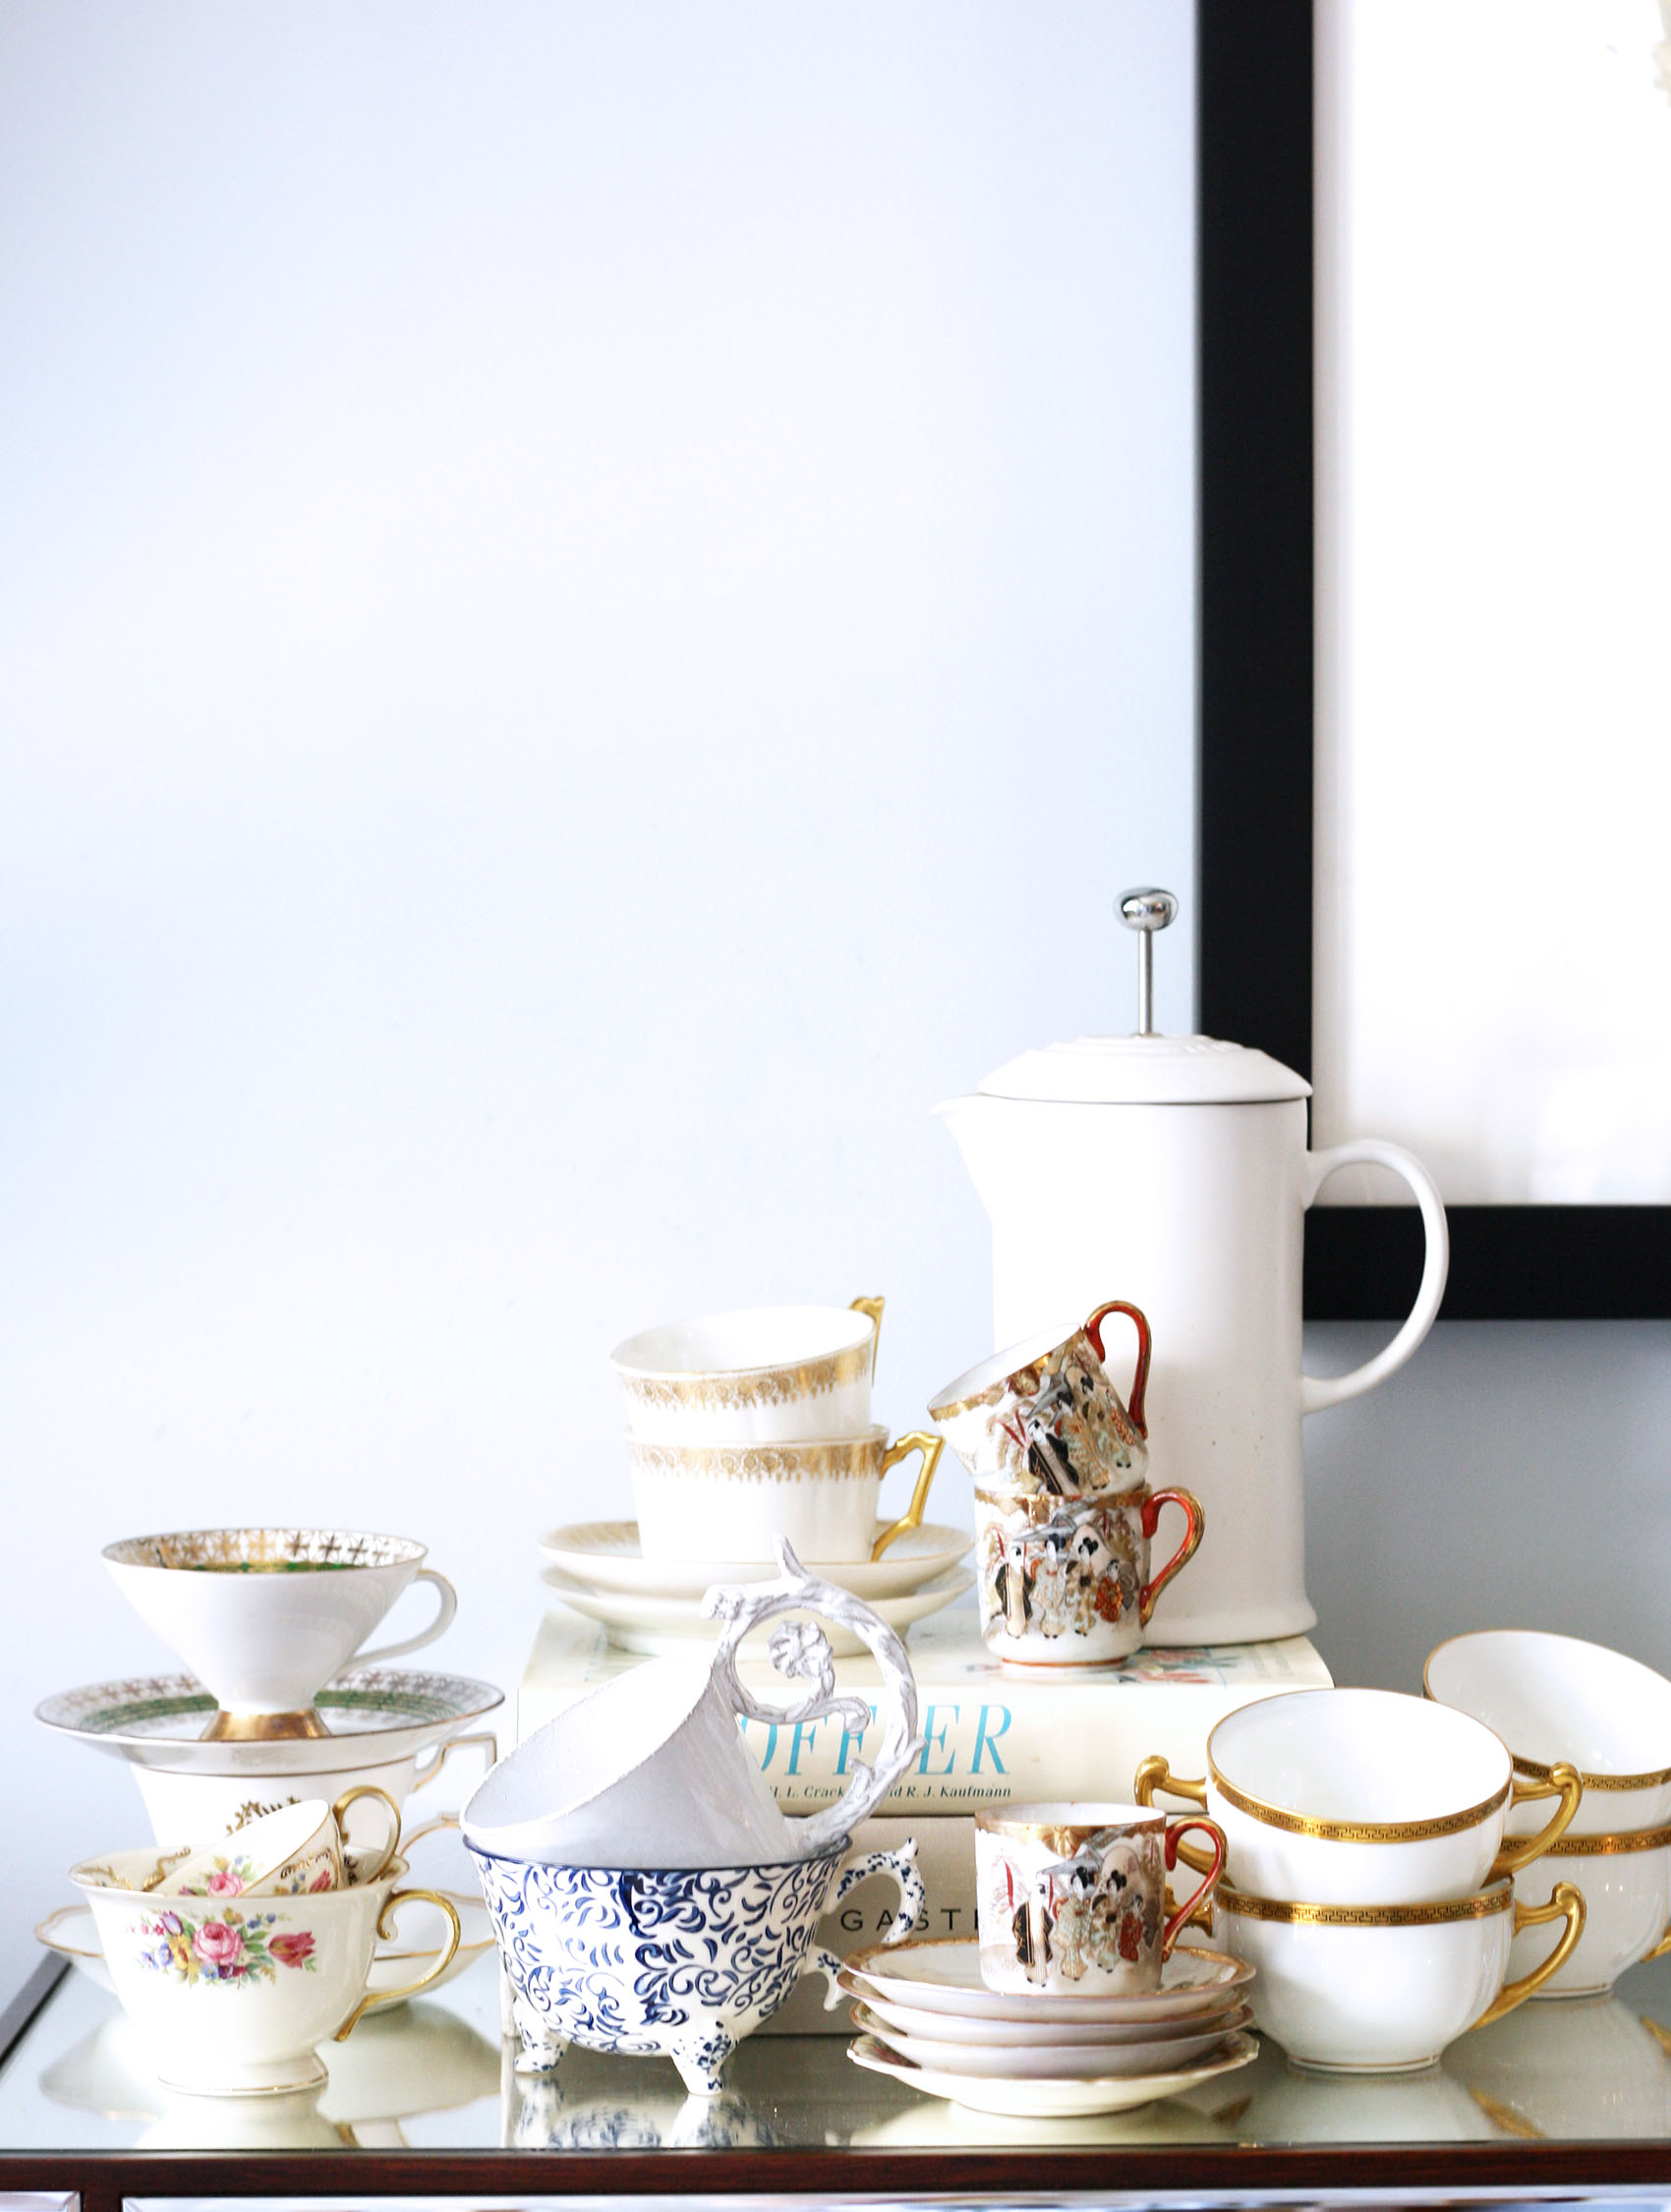 collection of vintage tea and coffee cups | via @victoriamstudio